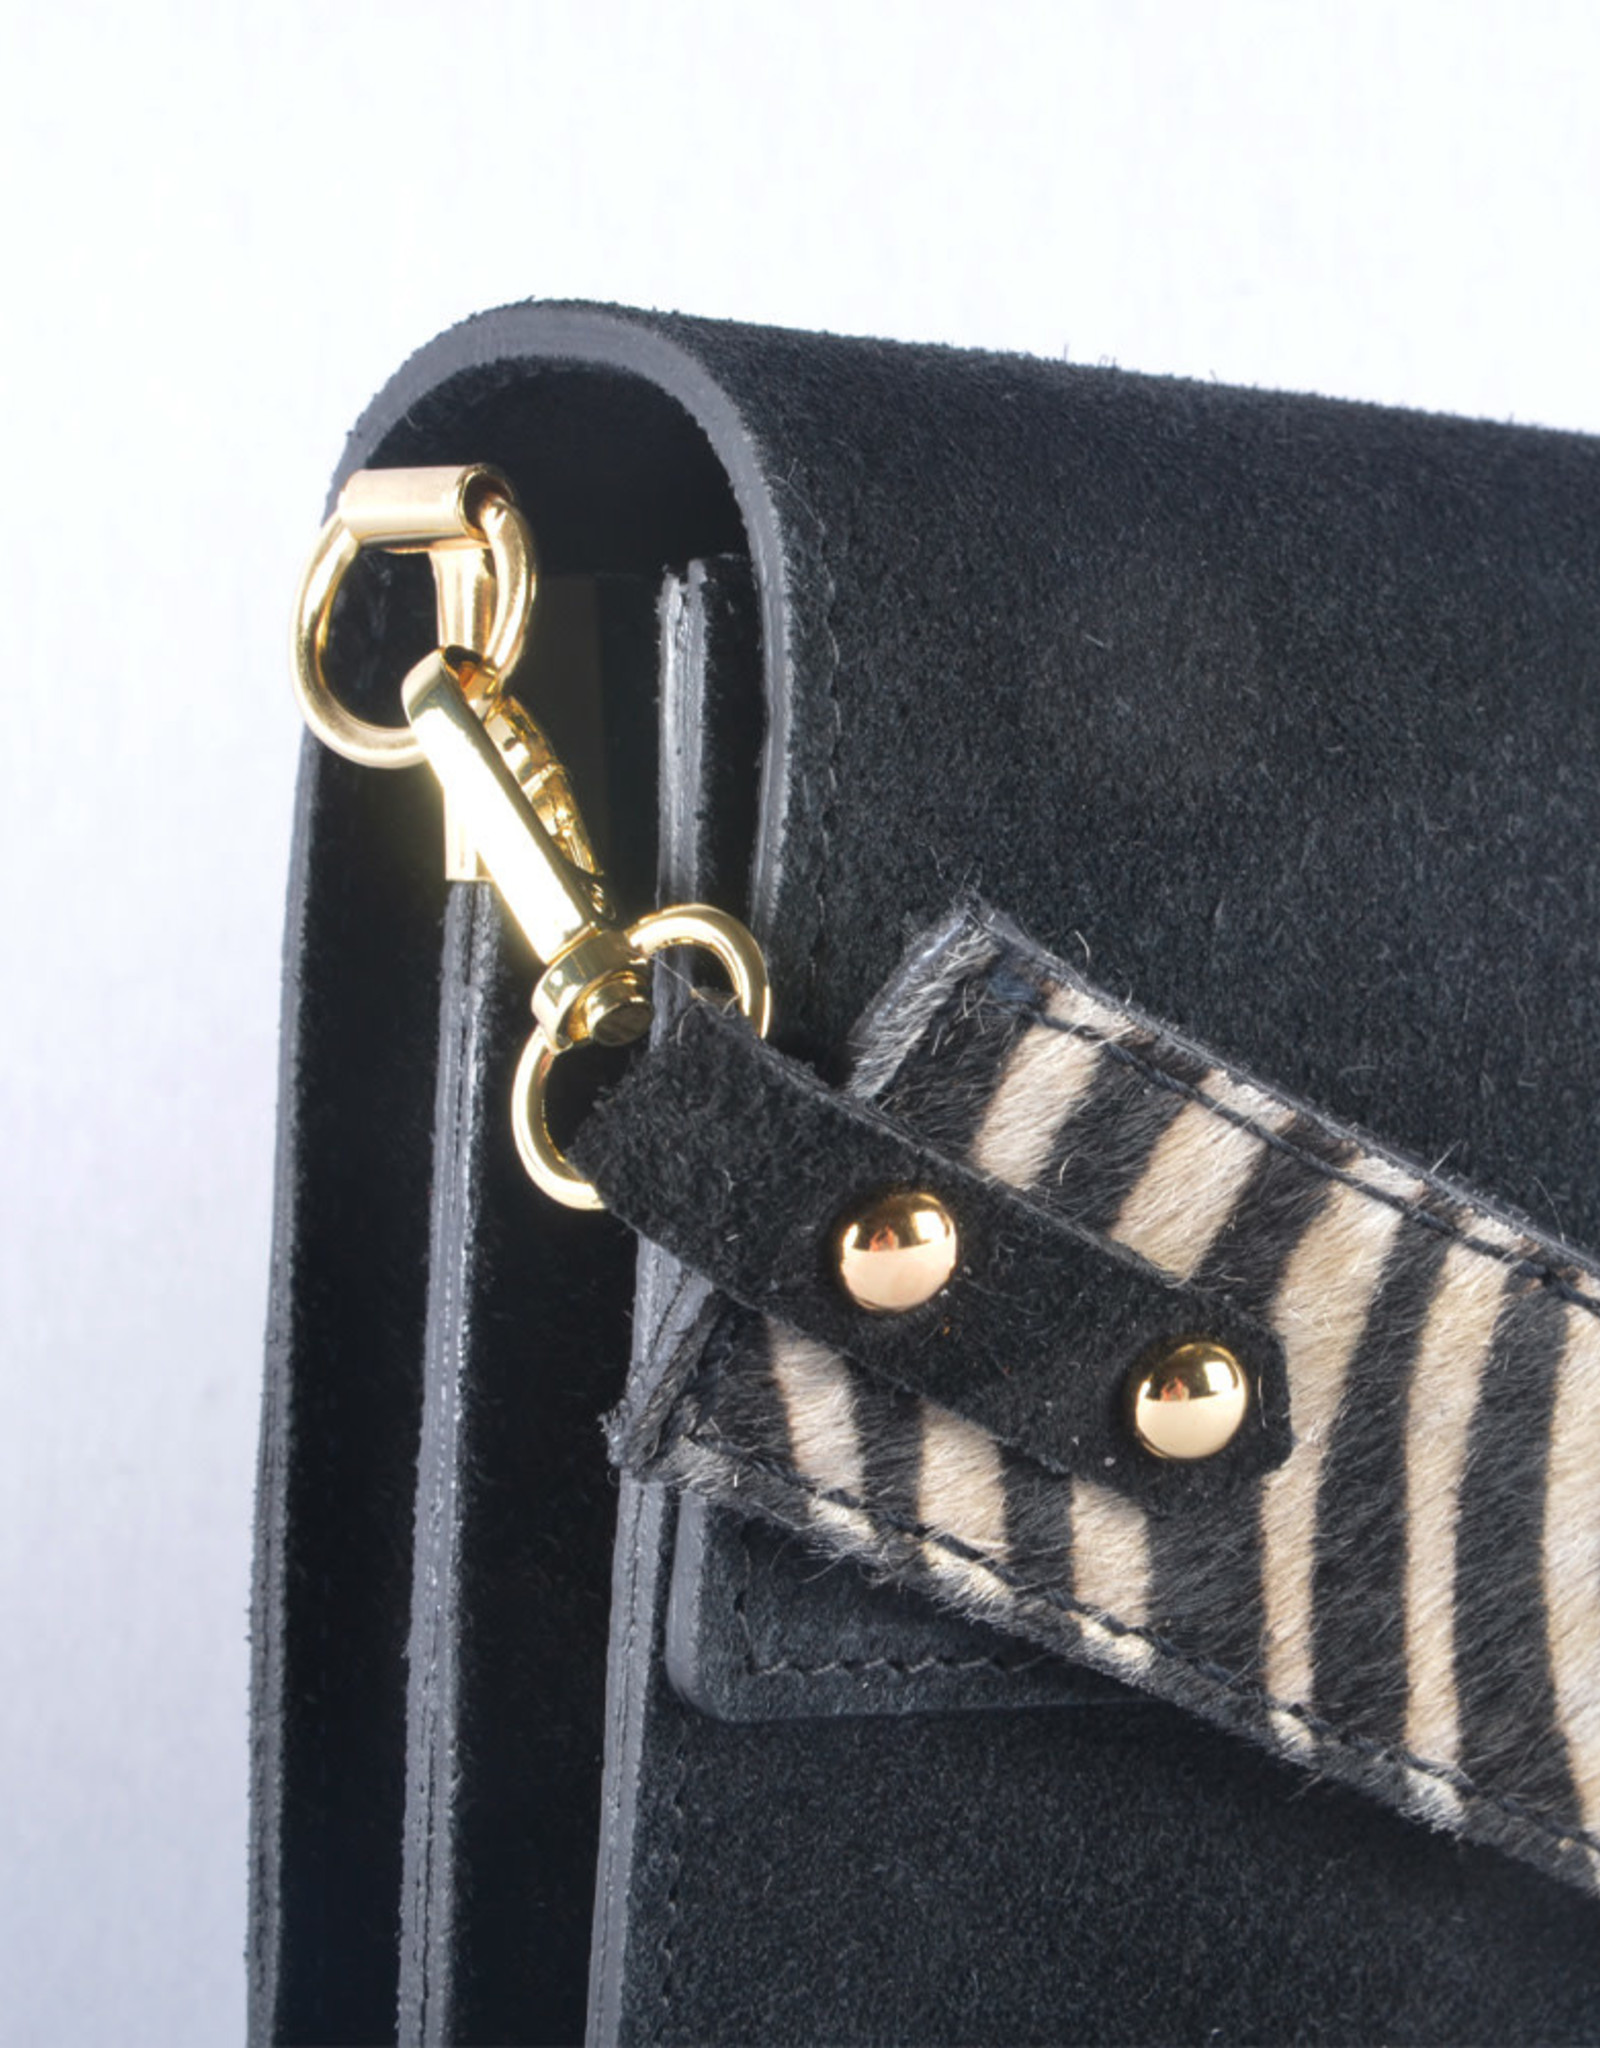 Zebra suede bag